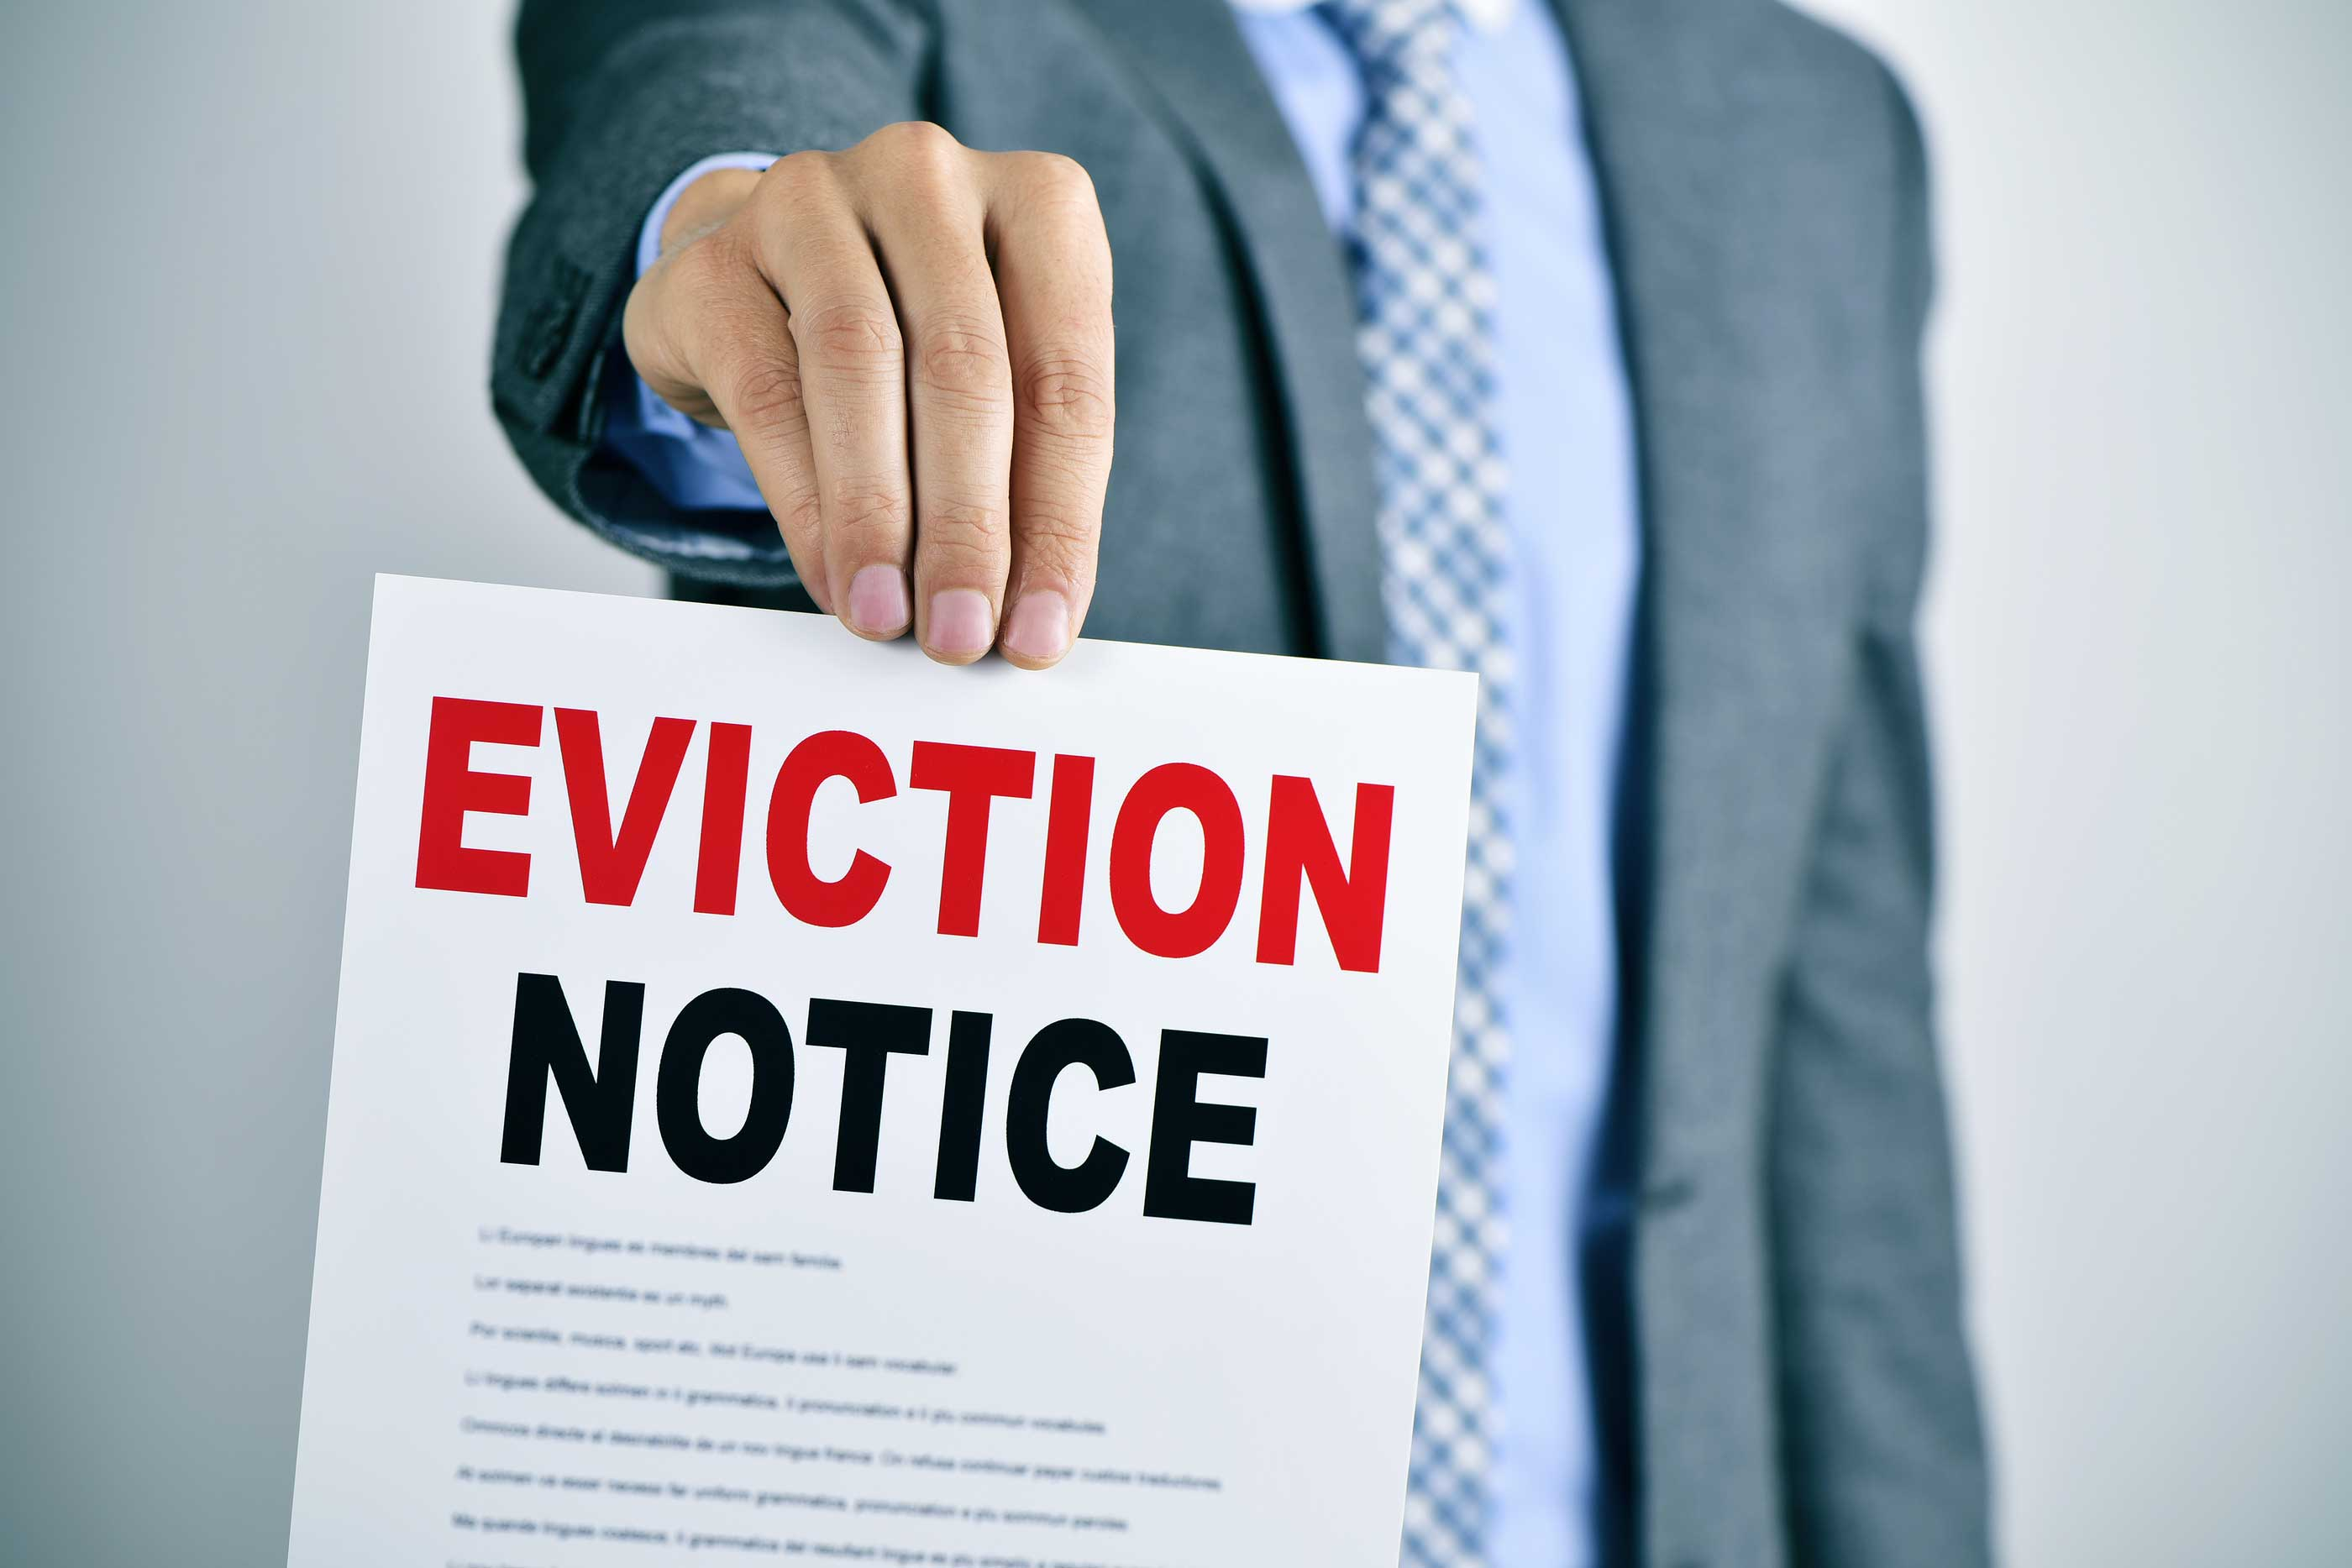 eviction notice due to lease violations in your rental property